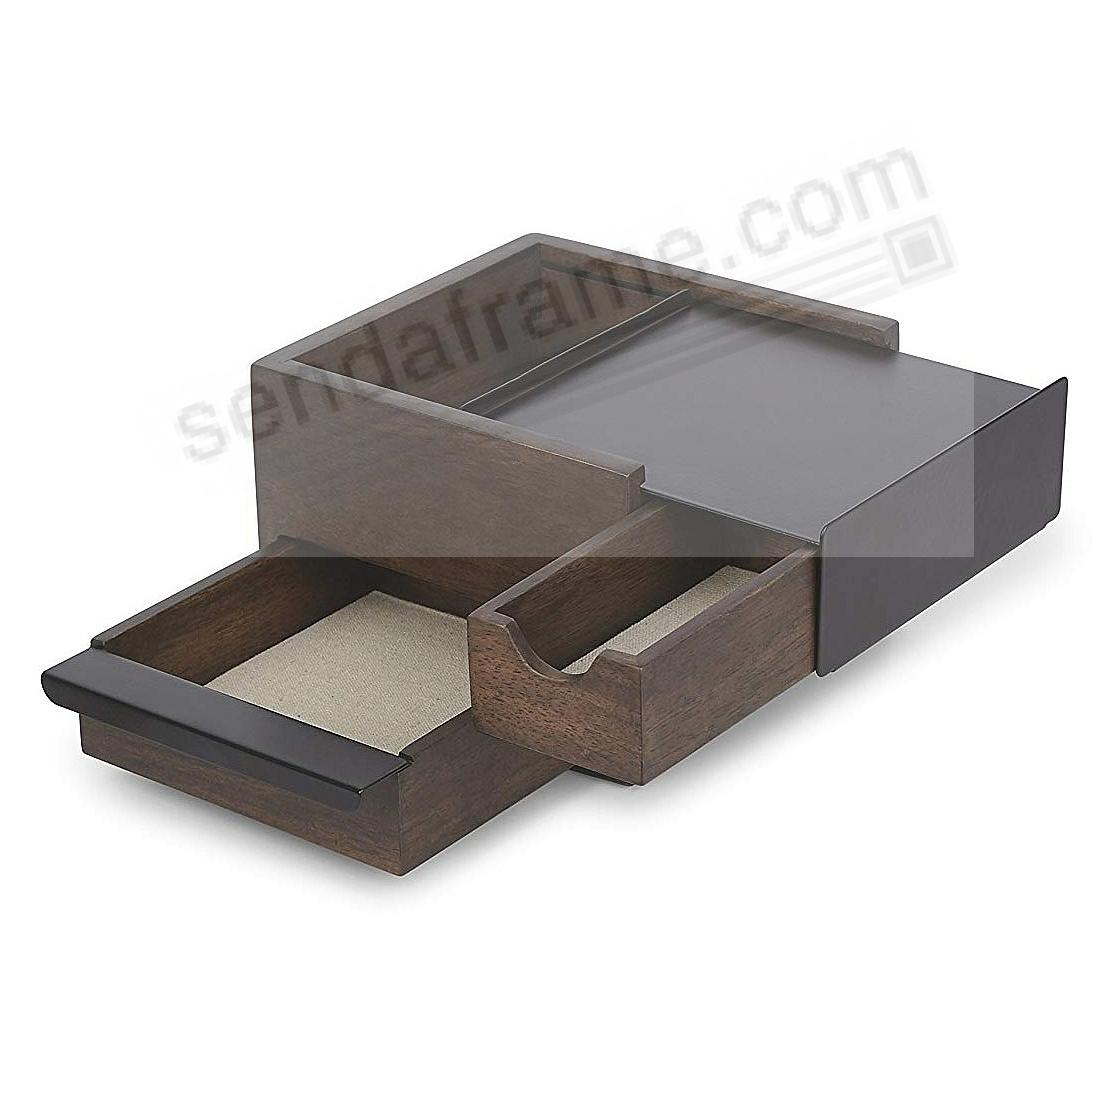 STOWIT MINI WALNUT/BLACK Jewelry + Keepsake Box by Umbra